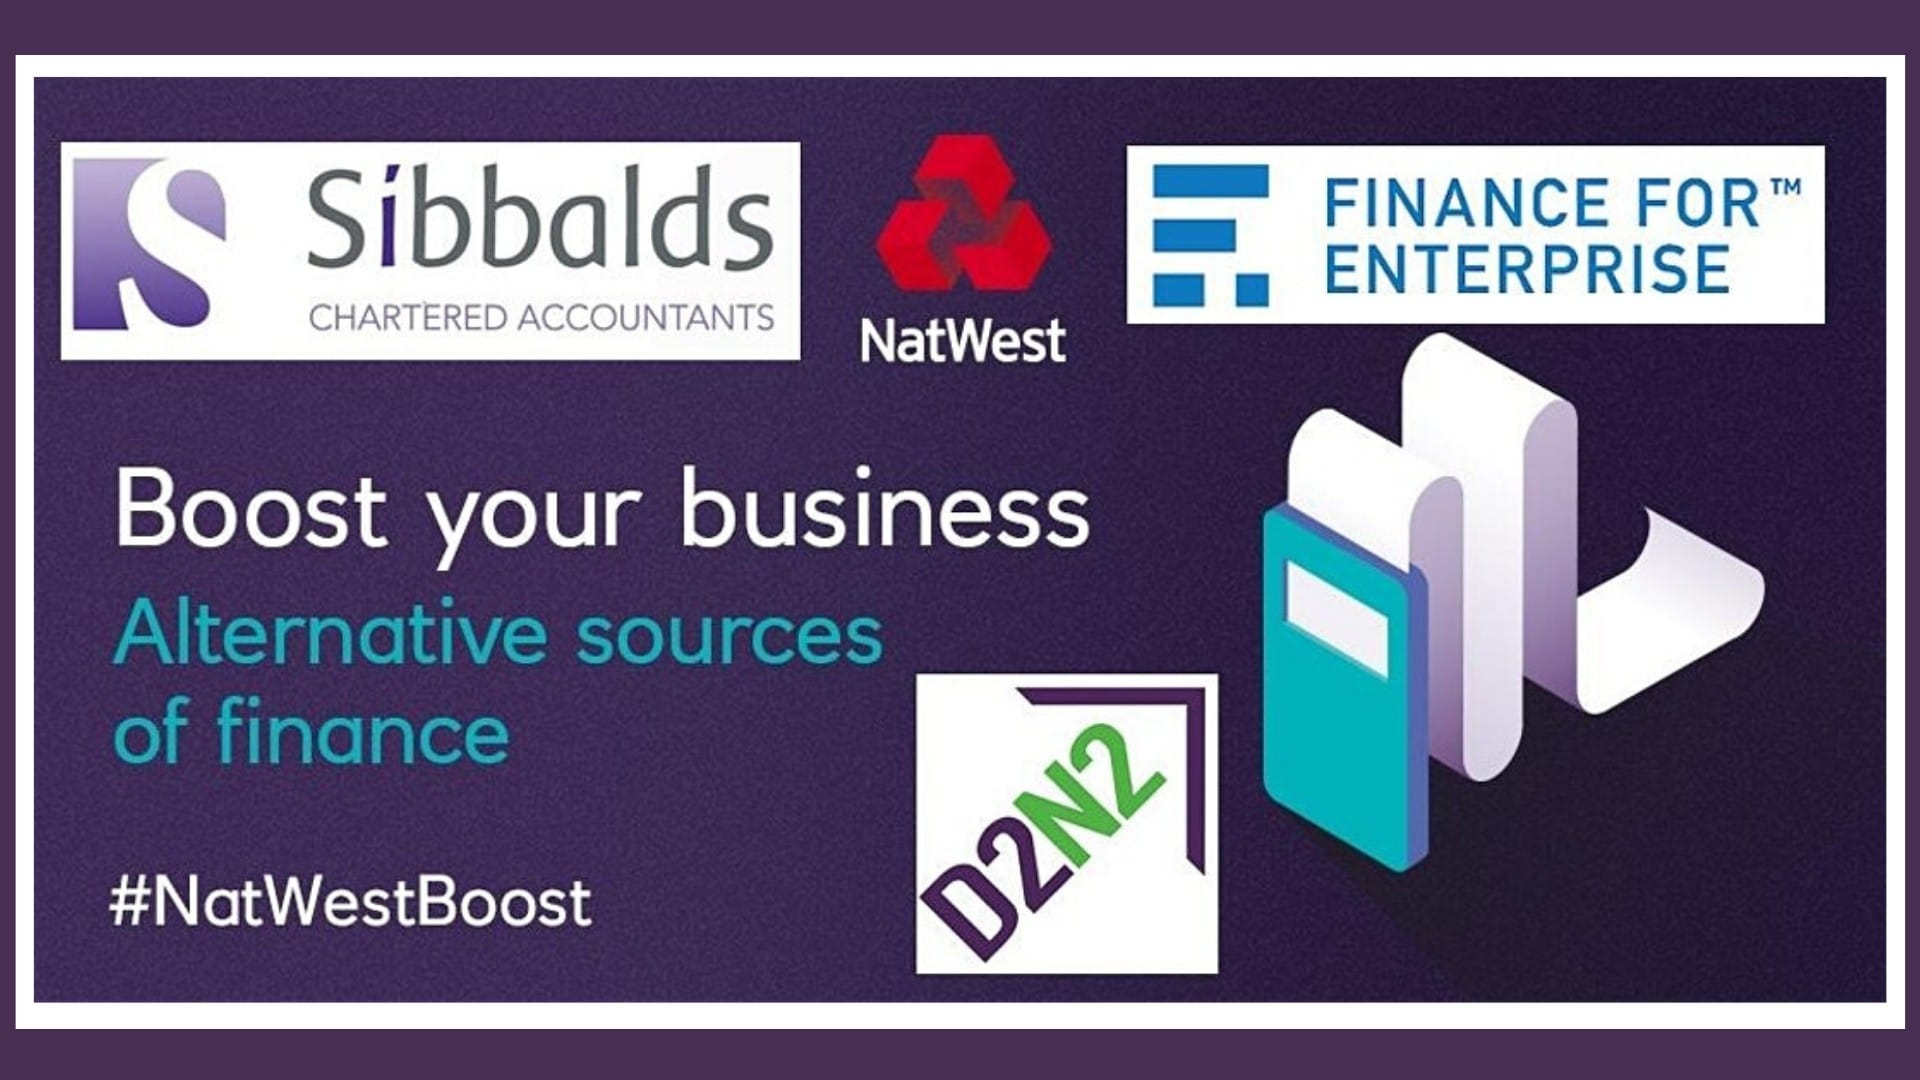 Funding For Your Business: Sources of Finance Available